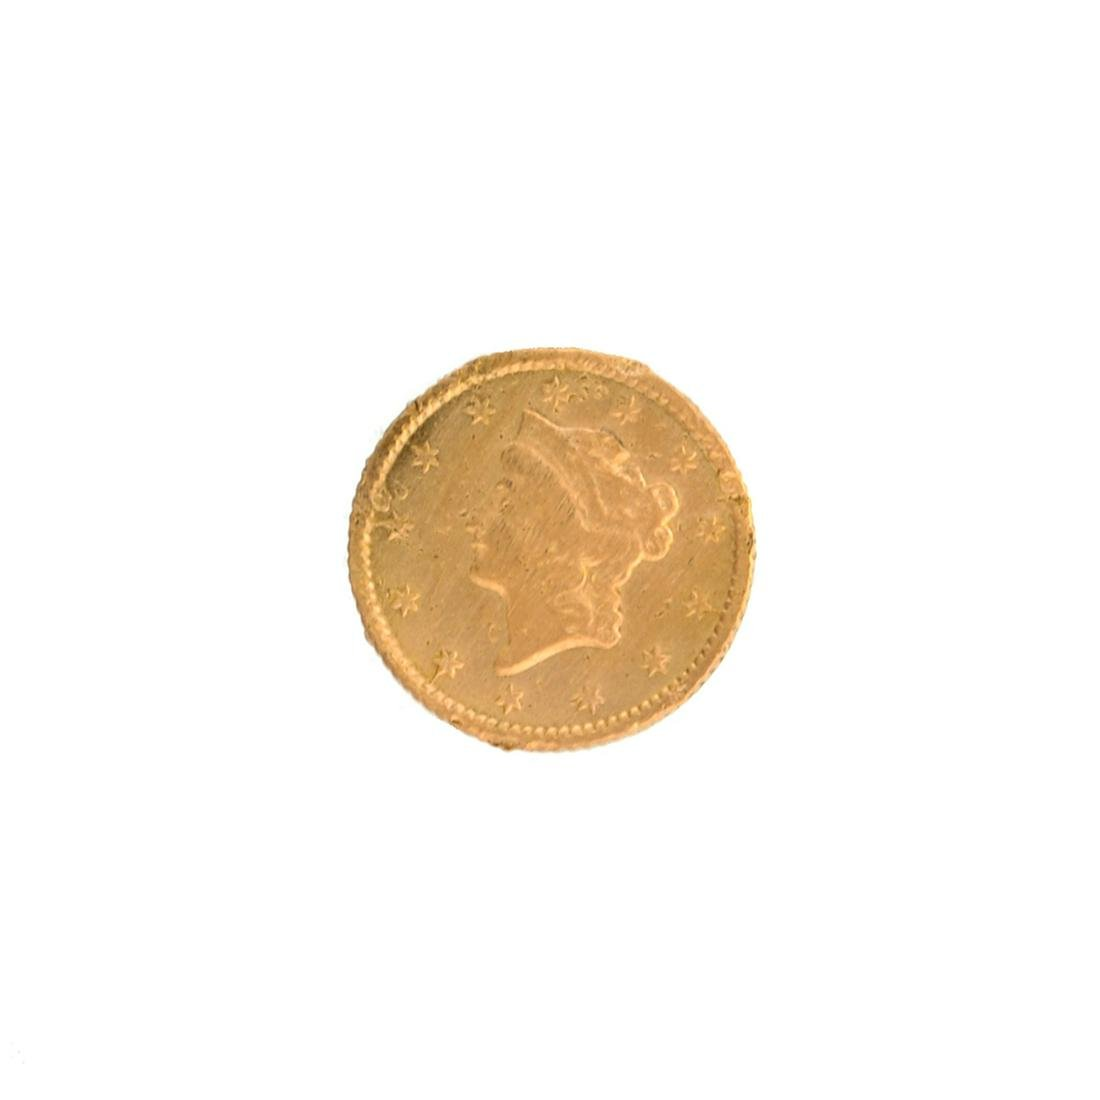 Extremely Rare 1853 $1 U.S. Liberty Head Gold Coin -